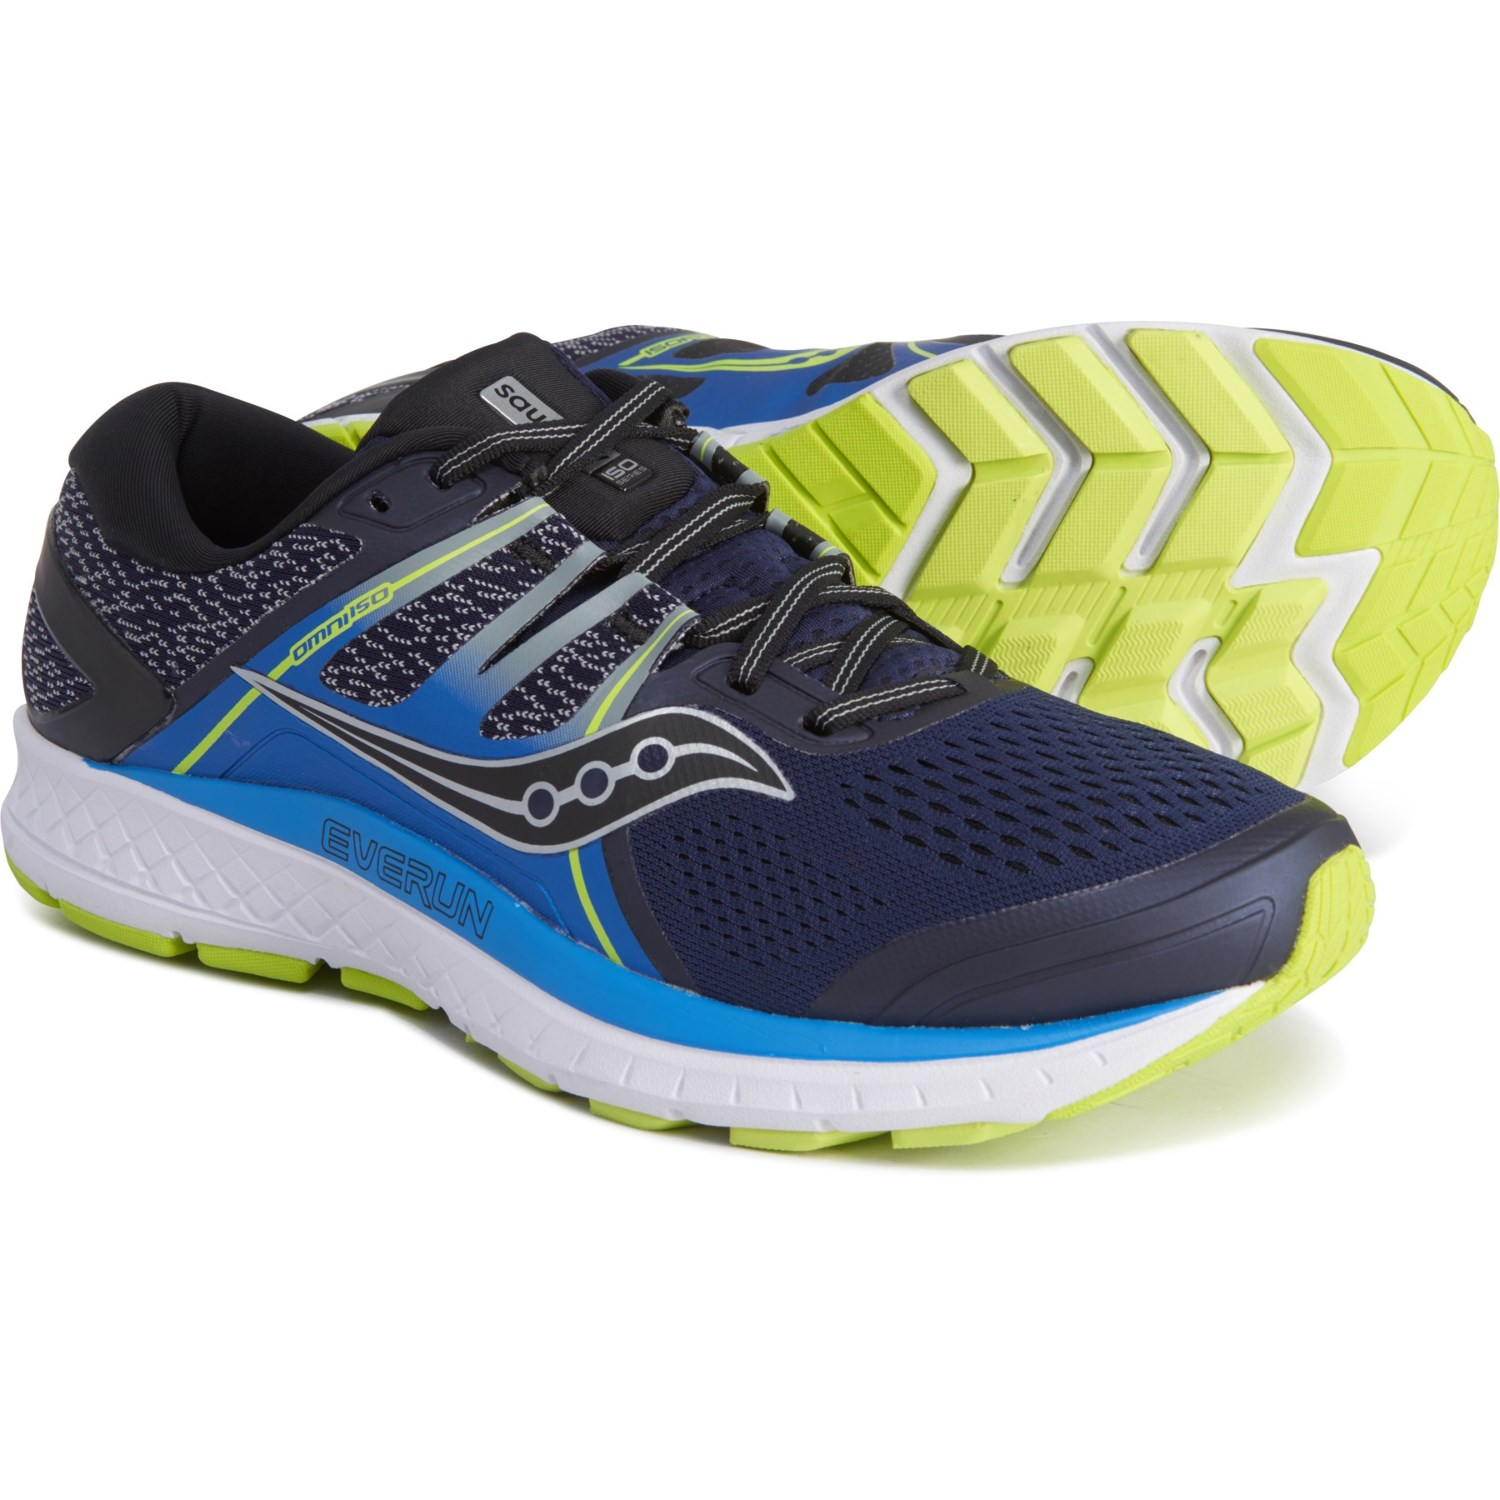 78cc27b113 Saucony Omni ISO Running Shoes (For Men) - Save 33%